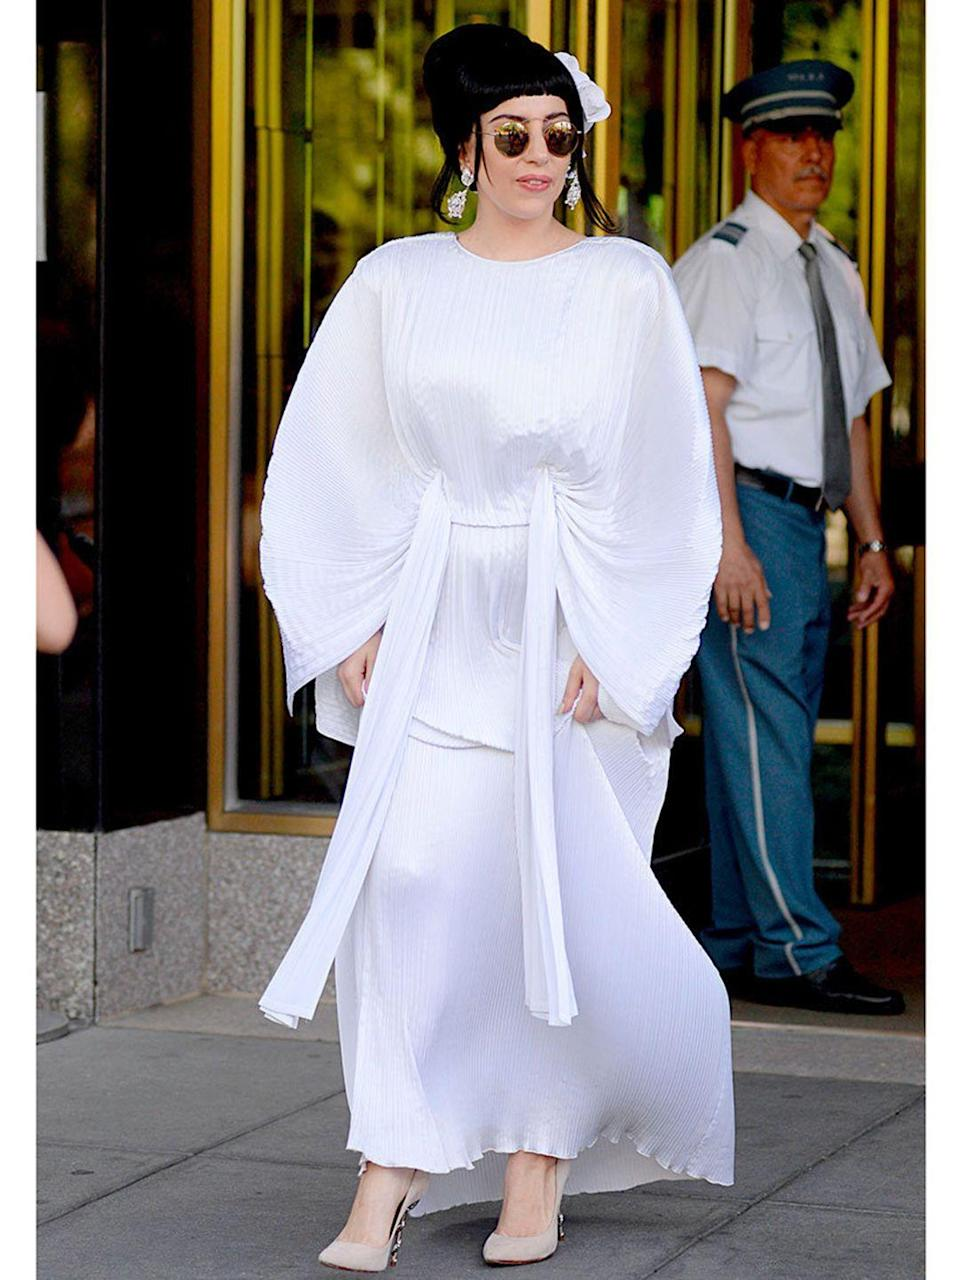 <p>Lady Gaga seen out and about in Central Park, New York.</p>